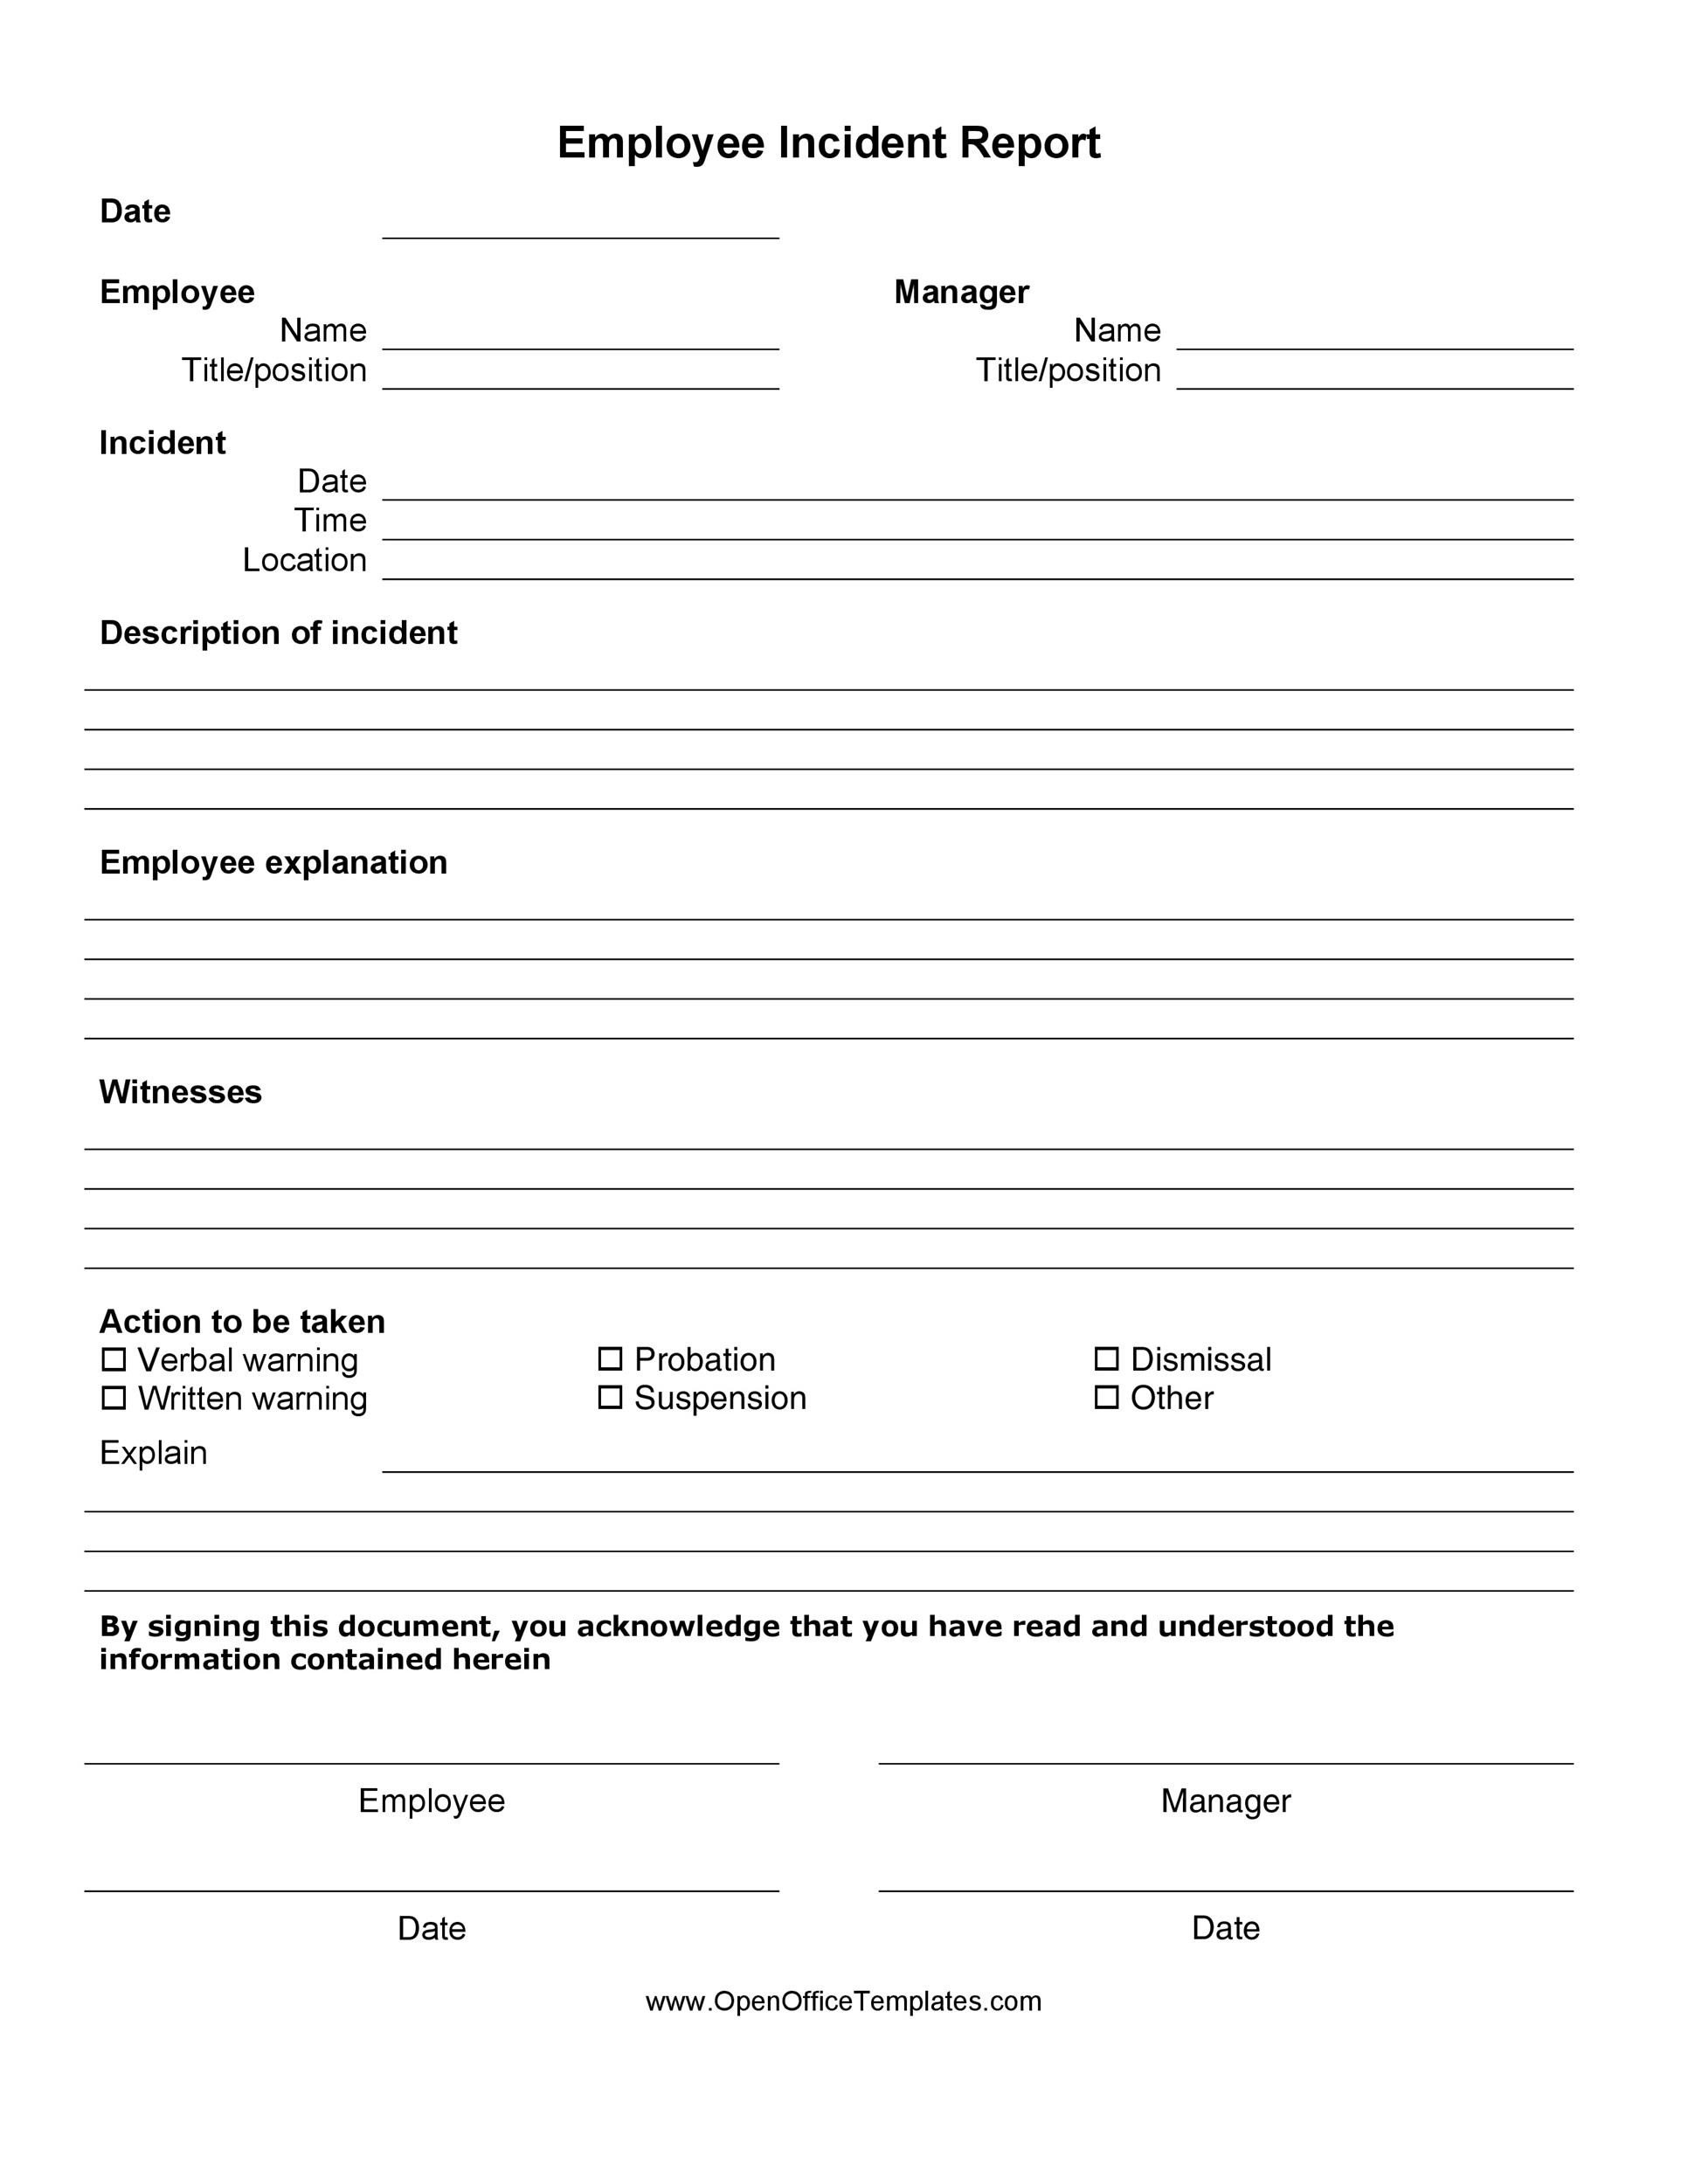 Template for financial institutions to report incidents to mas, including incidents relating to it systems, cyber security, information loss and liquidity. 60 Incident Report Template Employee Police Generic Á… Templatelab